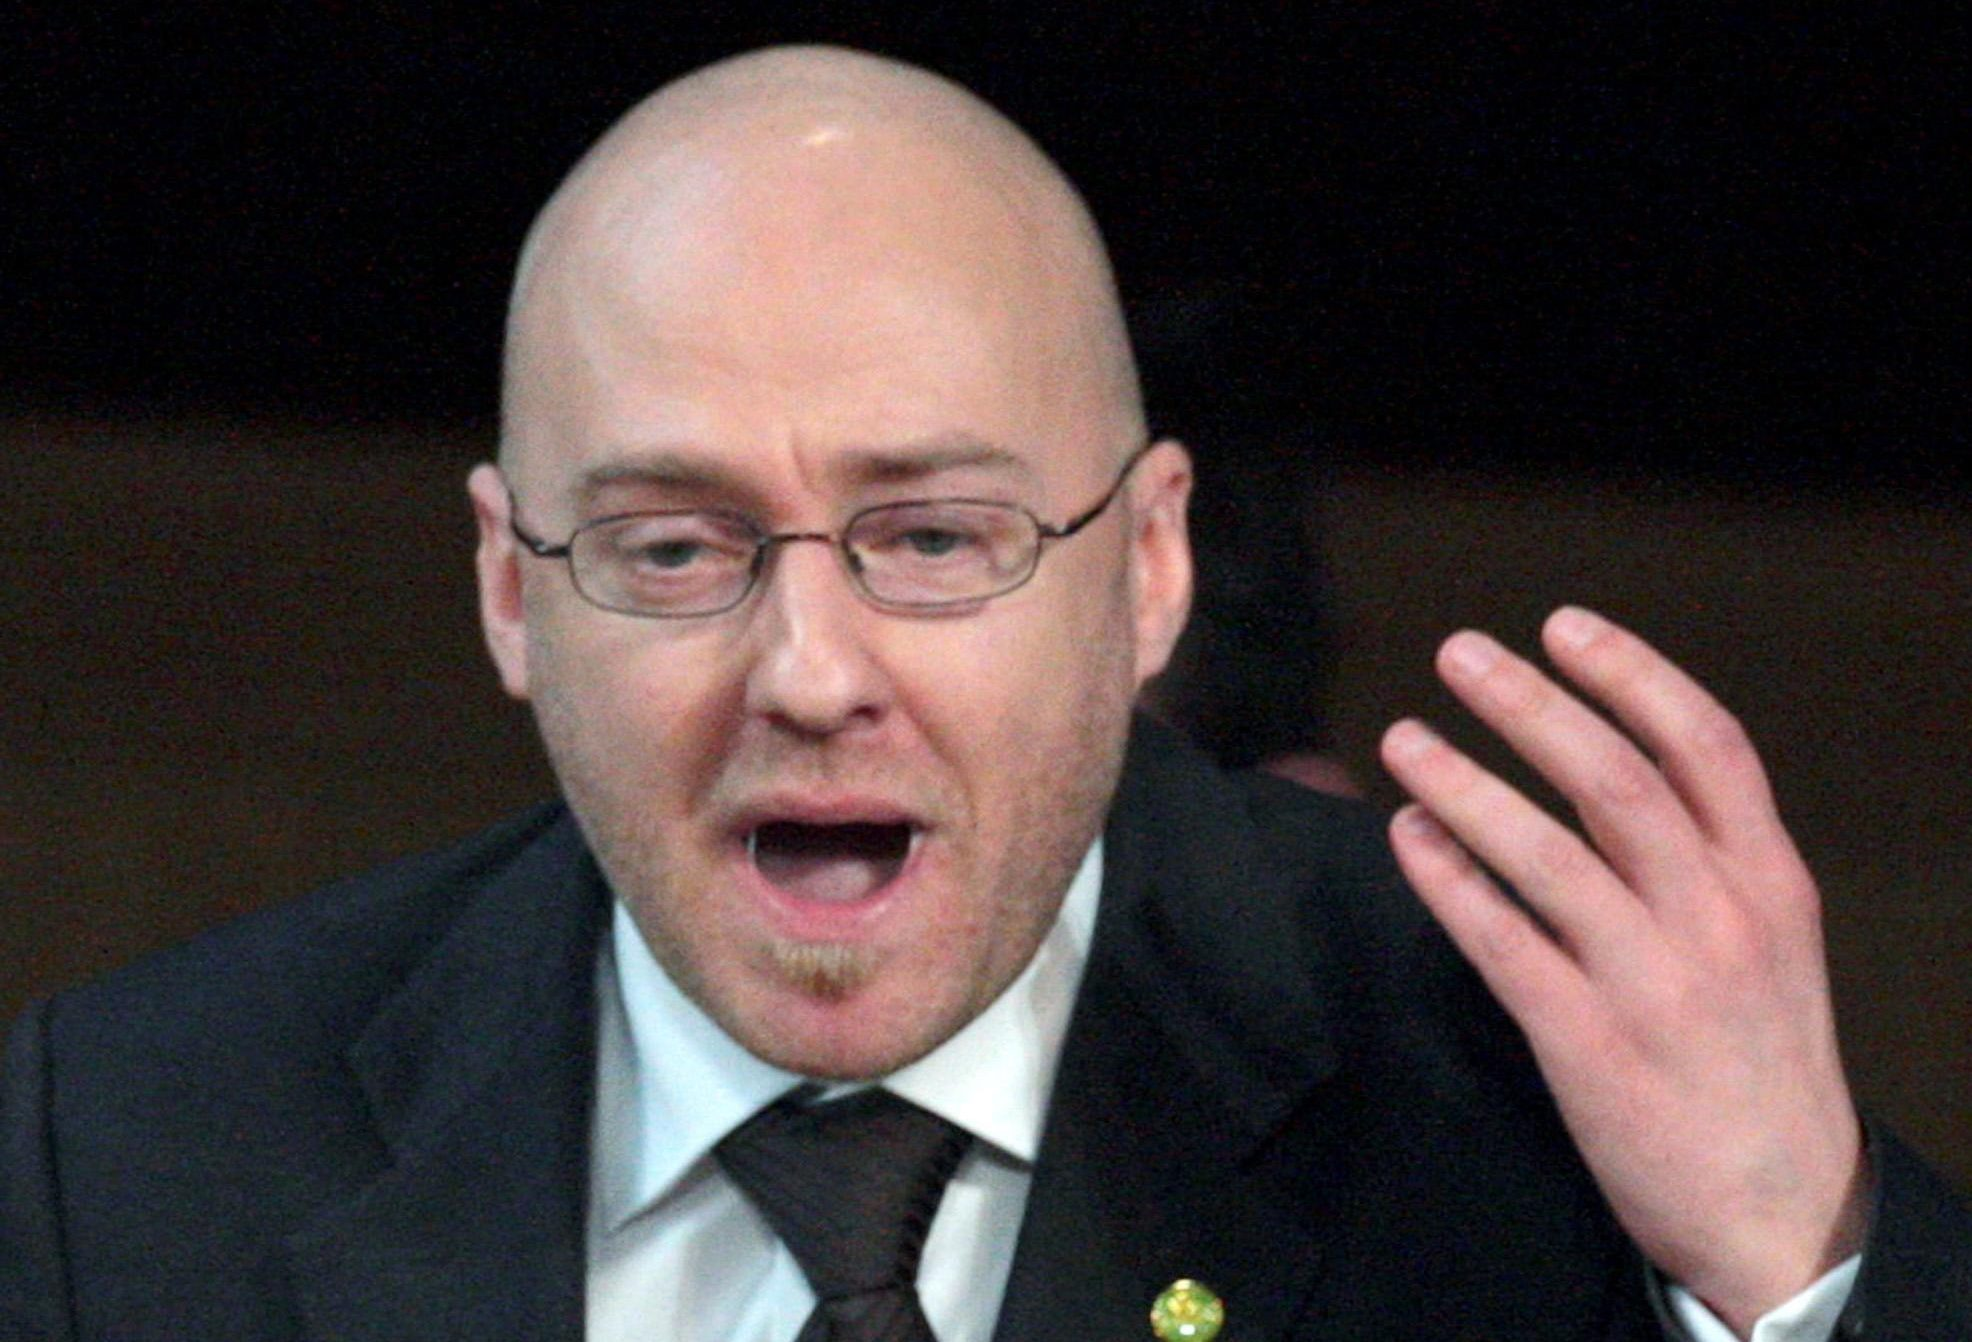 Scottish Green Party co-convener Patrick Harvie raised the issue at FMQs.